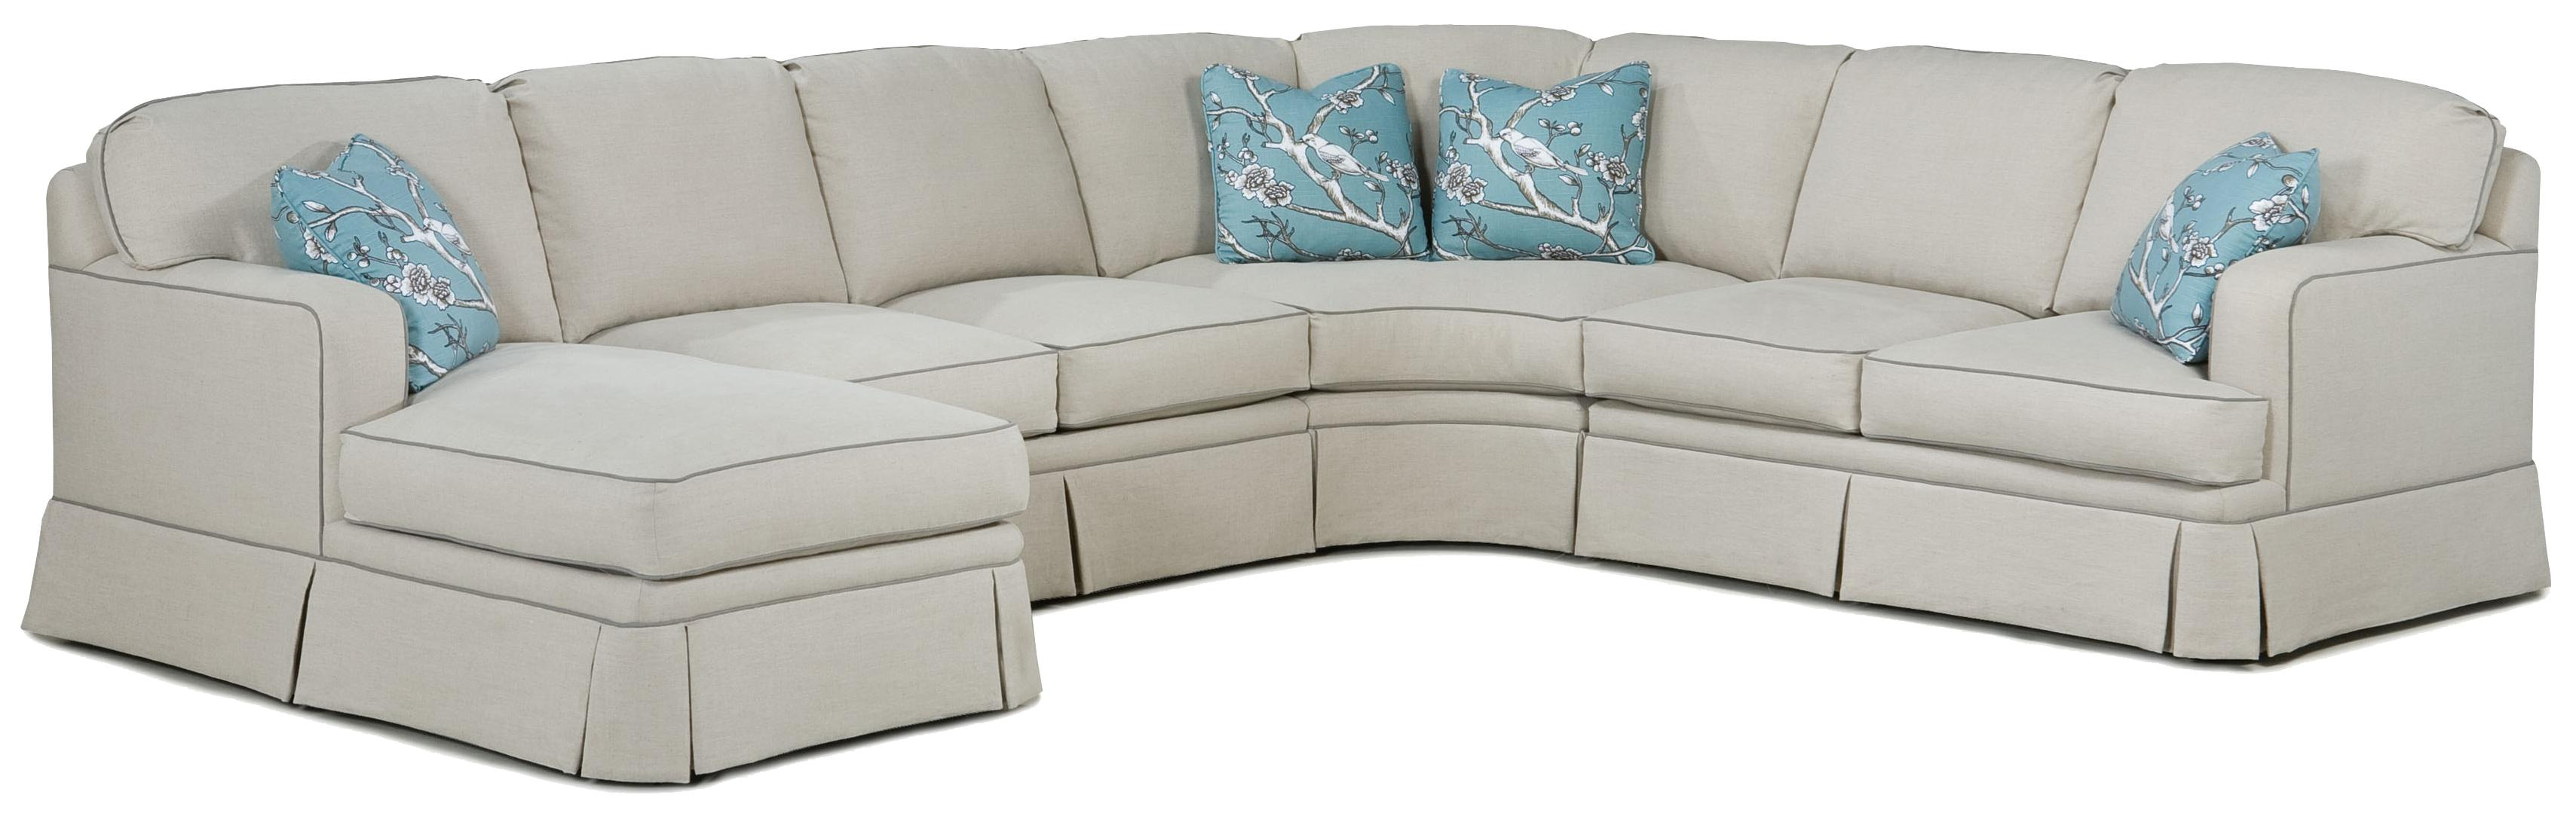 2TKS Contemporary Sectional by Fairfield at Belfort Furniture